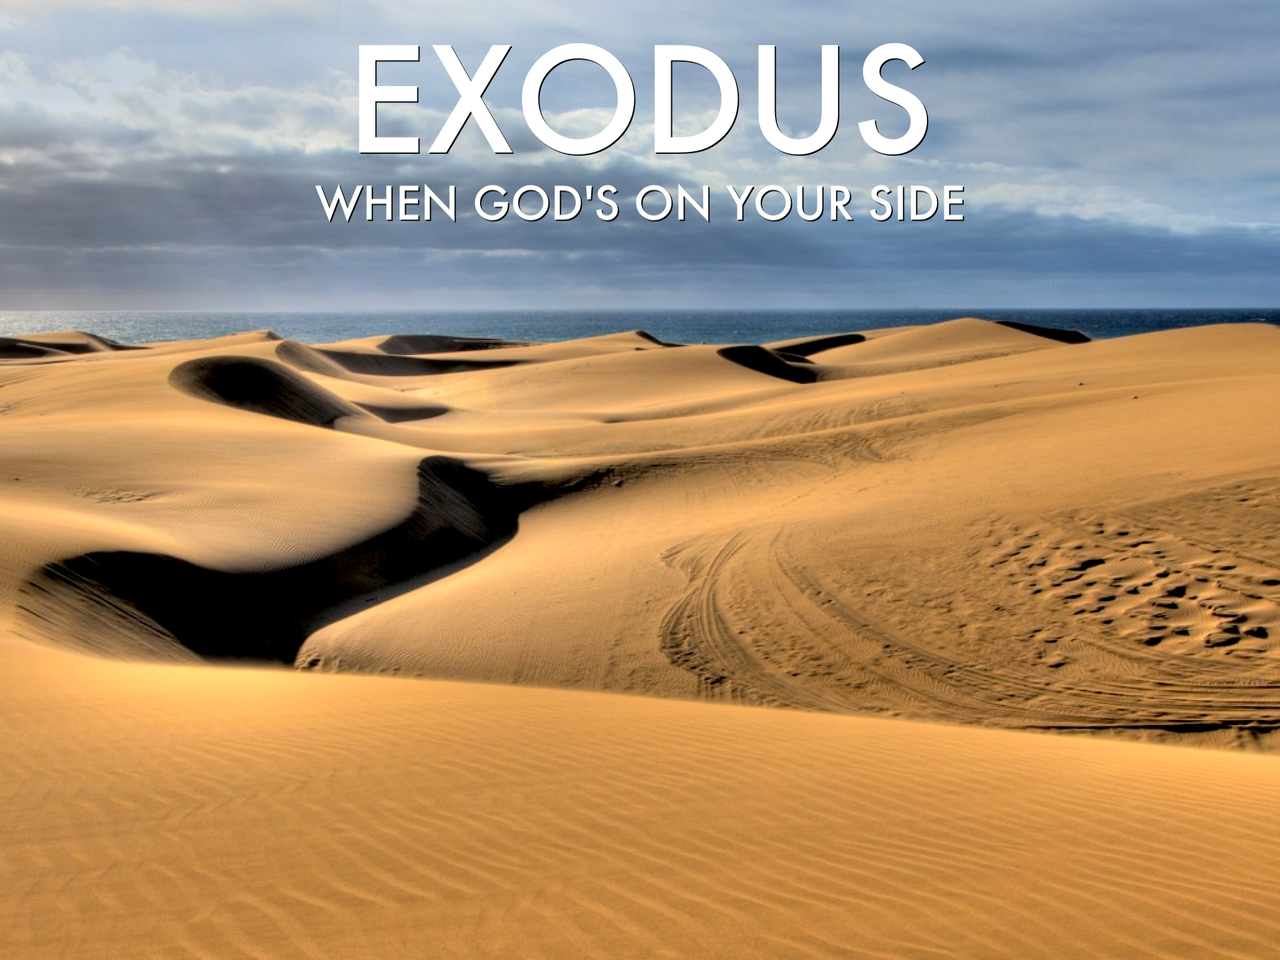 We've started a study on Sunday mornings in the book of Exodus! Come join us at 9:30am.